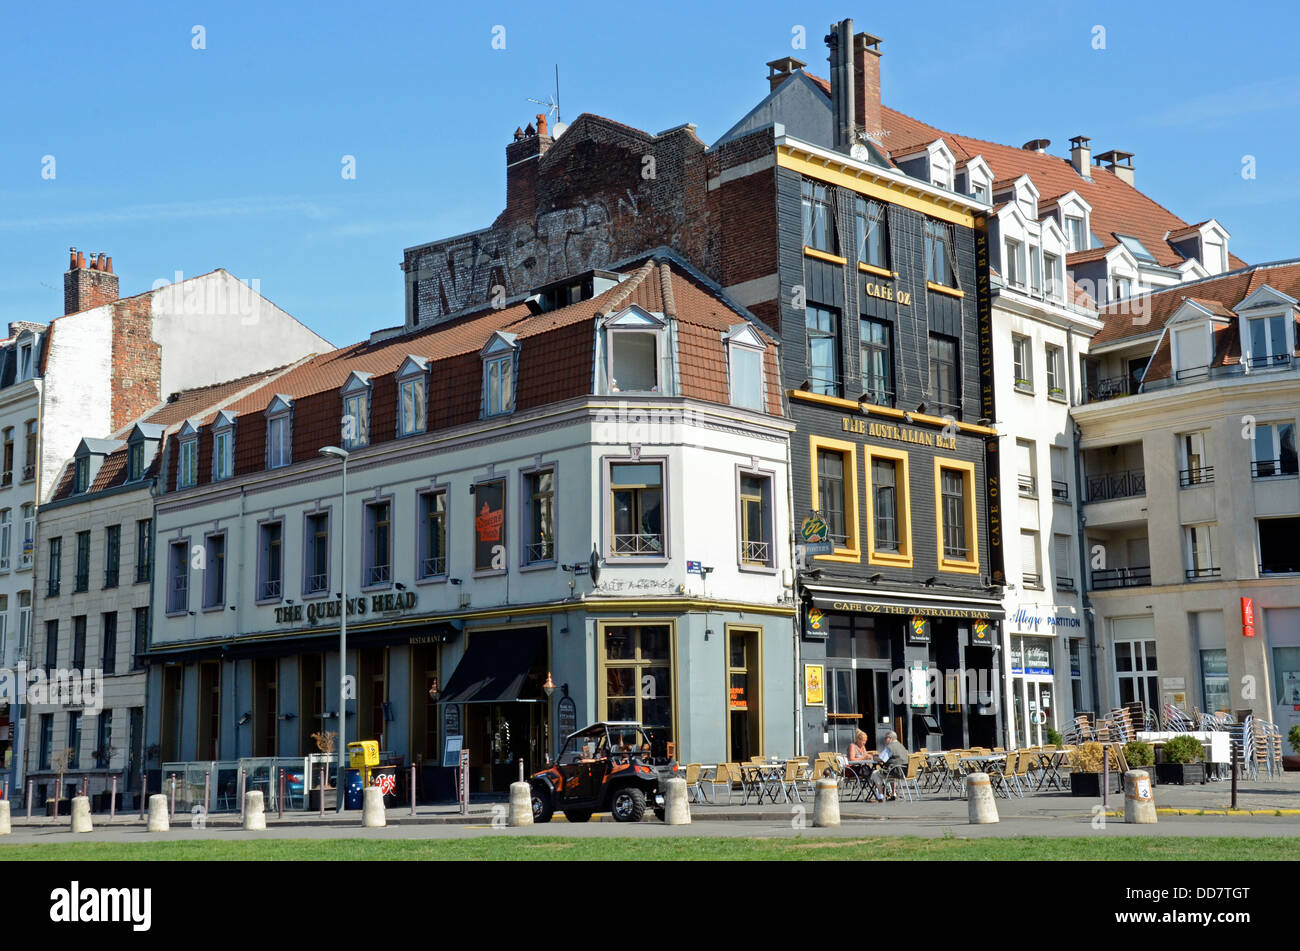 The Australian Bar and Queen's Head, Lille, Nord, France - Stock Image